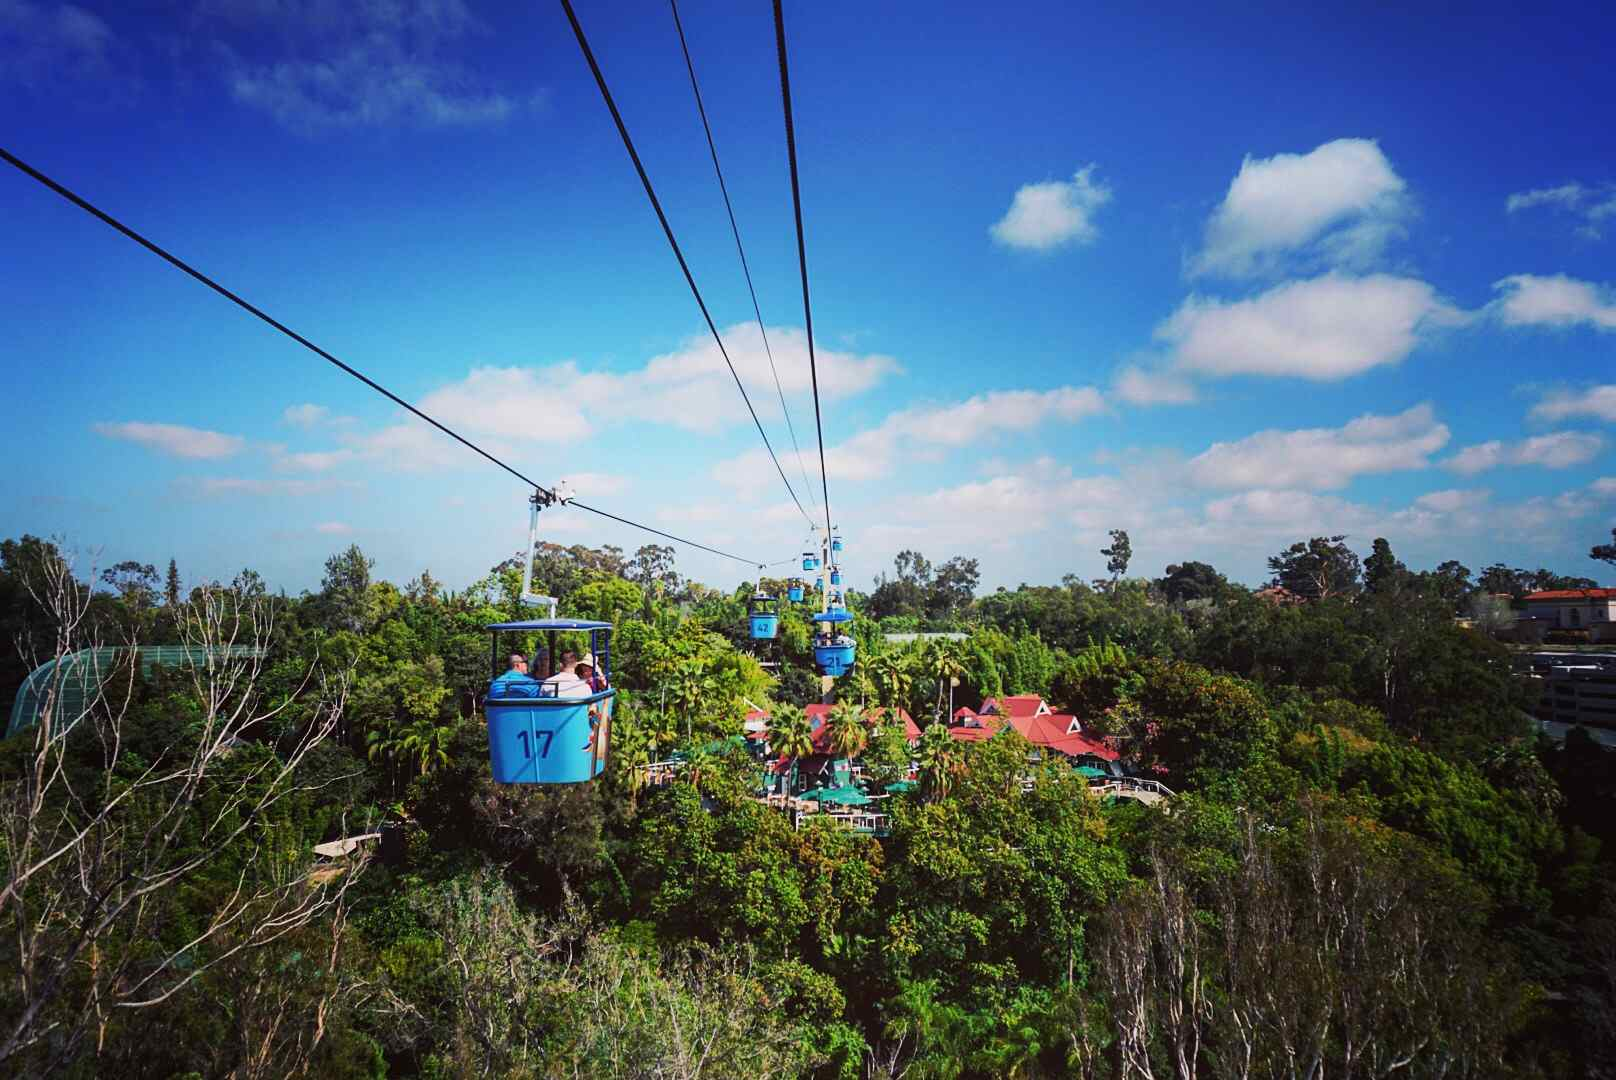 Overhead Cable Cars at the San Diego Zoo